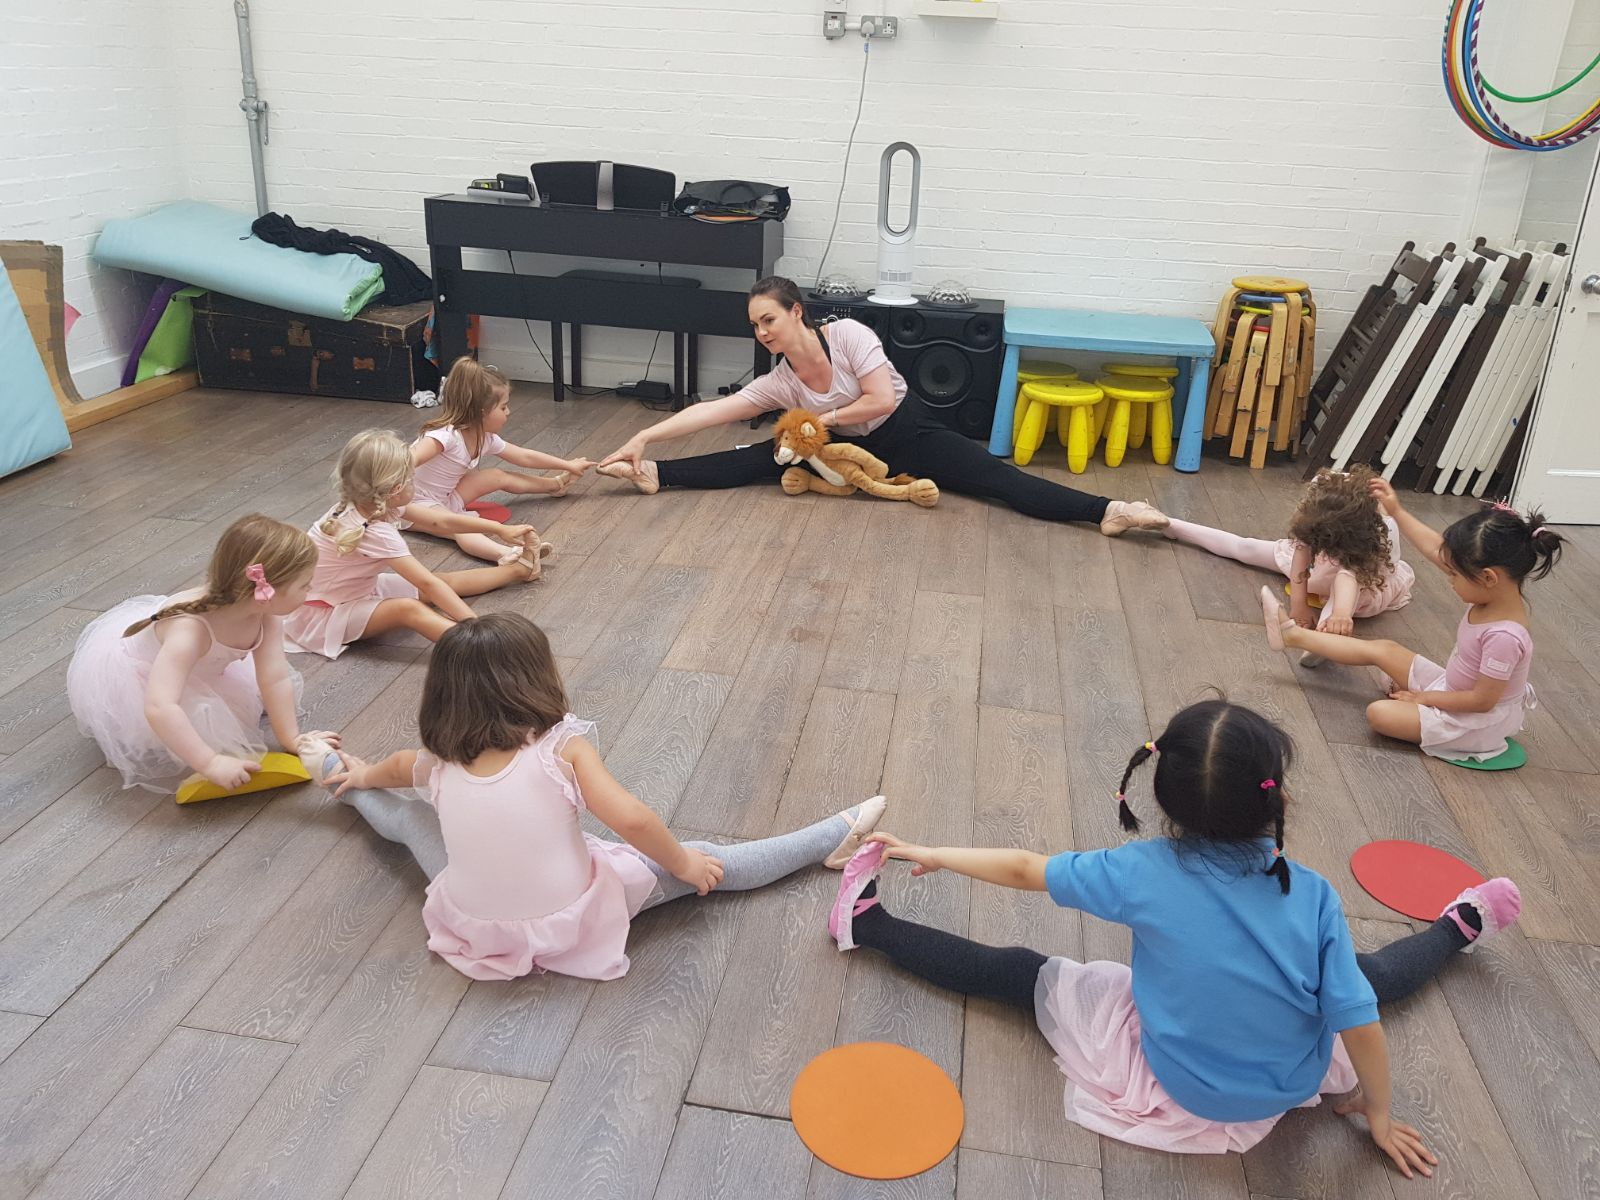 Ballet - Primary level is structured much more like a grown up ballet class with steps that increase in speed and elevation and a dance to be performed at the end.The children learn the Royal Academy of Dance syllabus in small chunks, building up to a class performance exam. Ages 3-5.OFFERED: Tuesdays at 15:45and Saturday 9:00 - 9:30.SIGN UP: You can trial the class for £12.90 click here.INSTRUCTOR: Laura